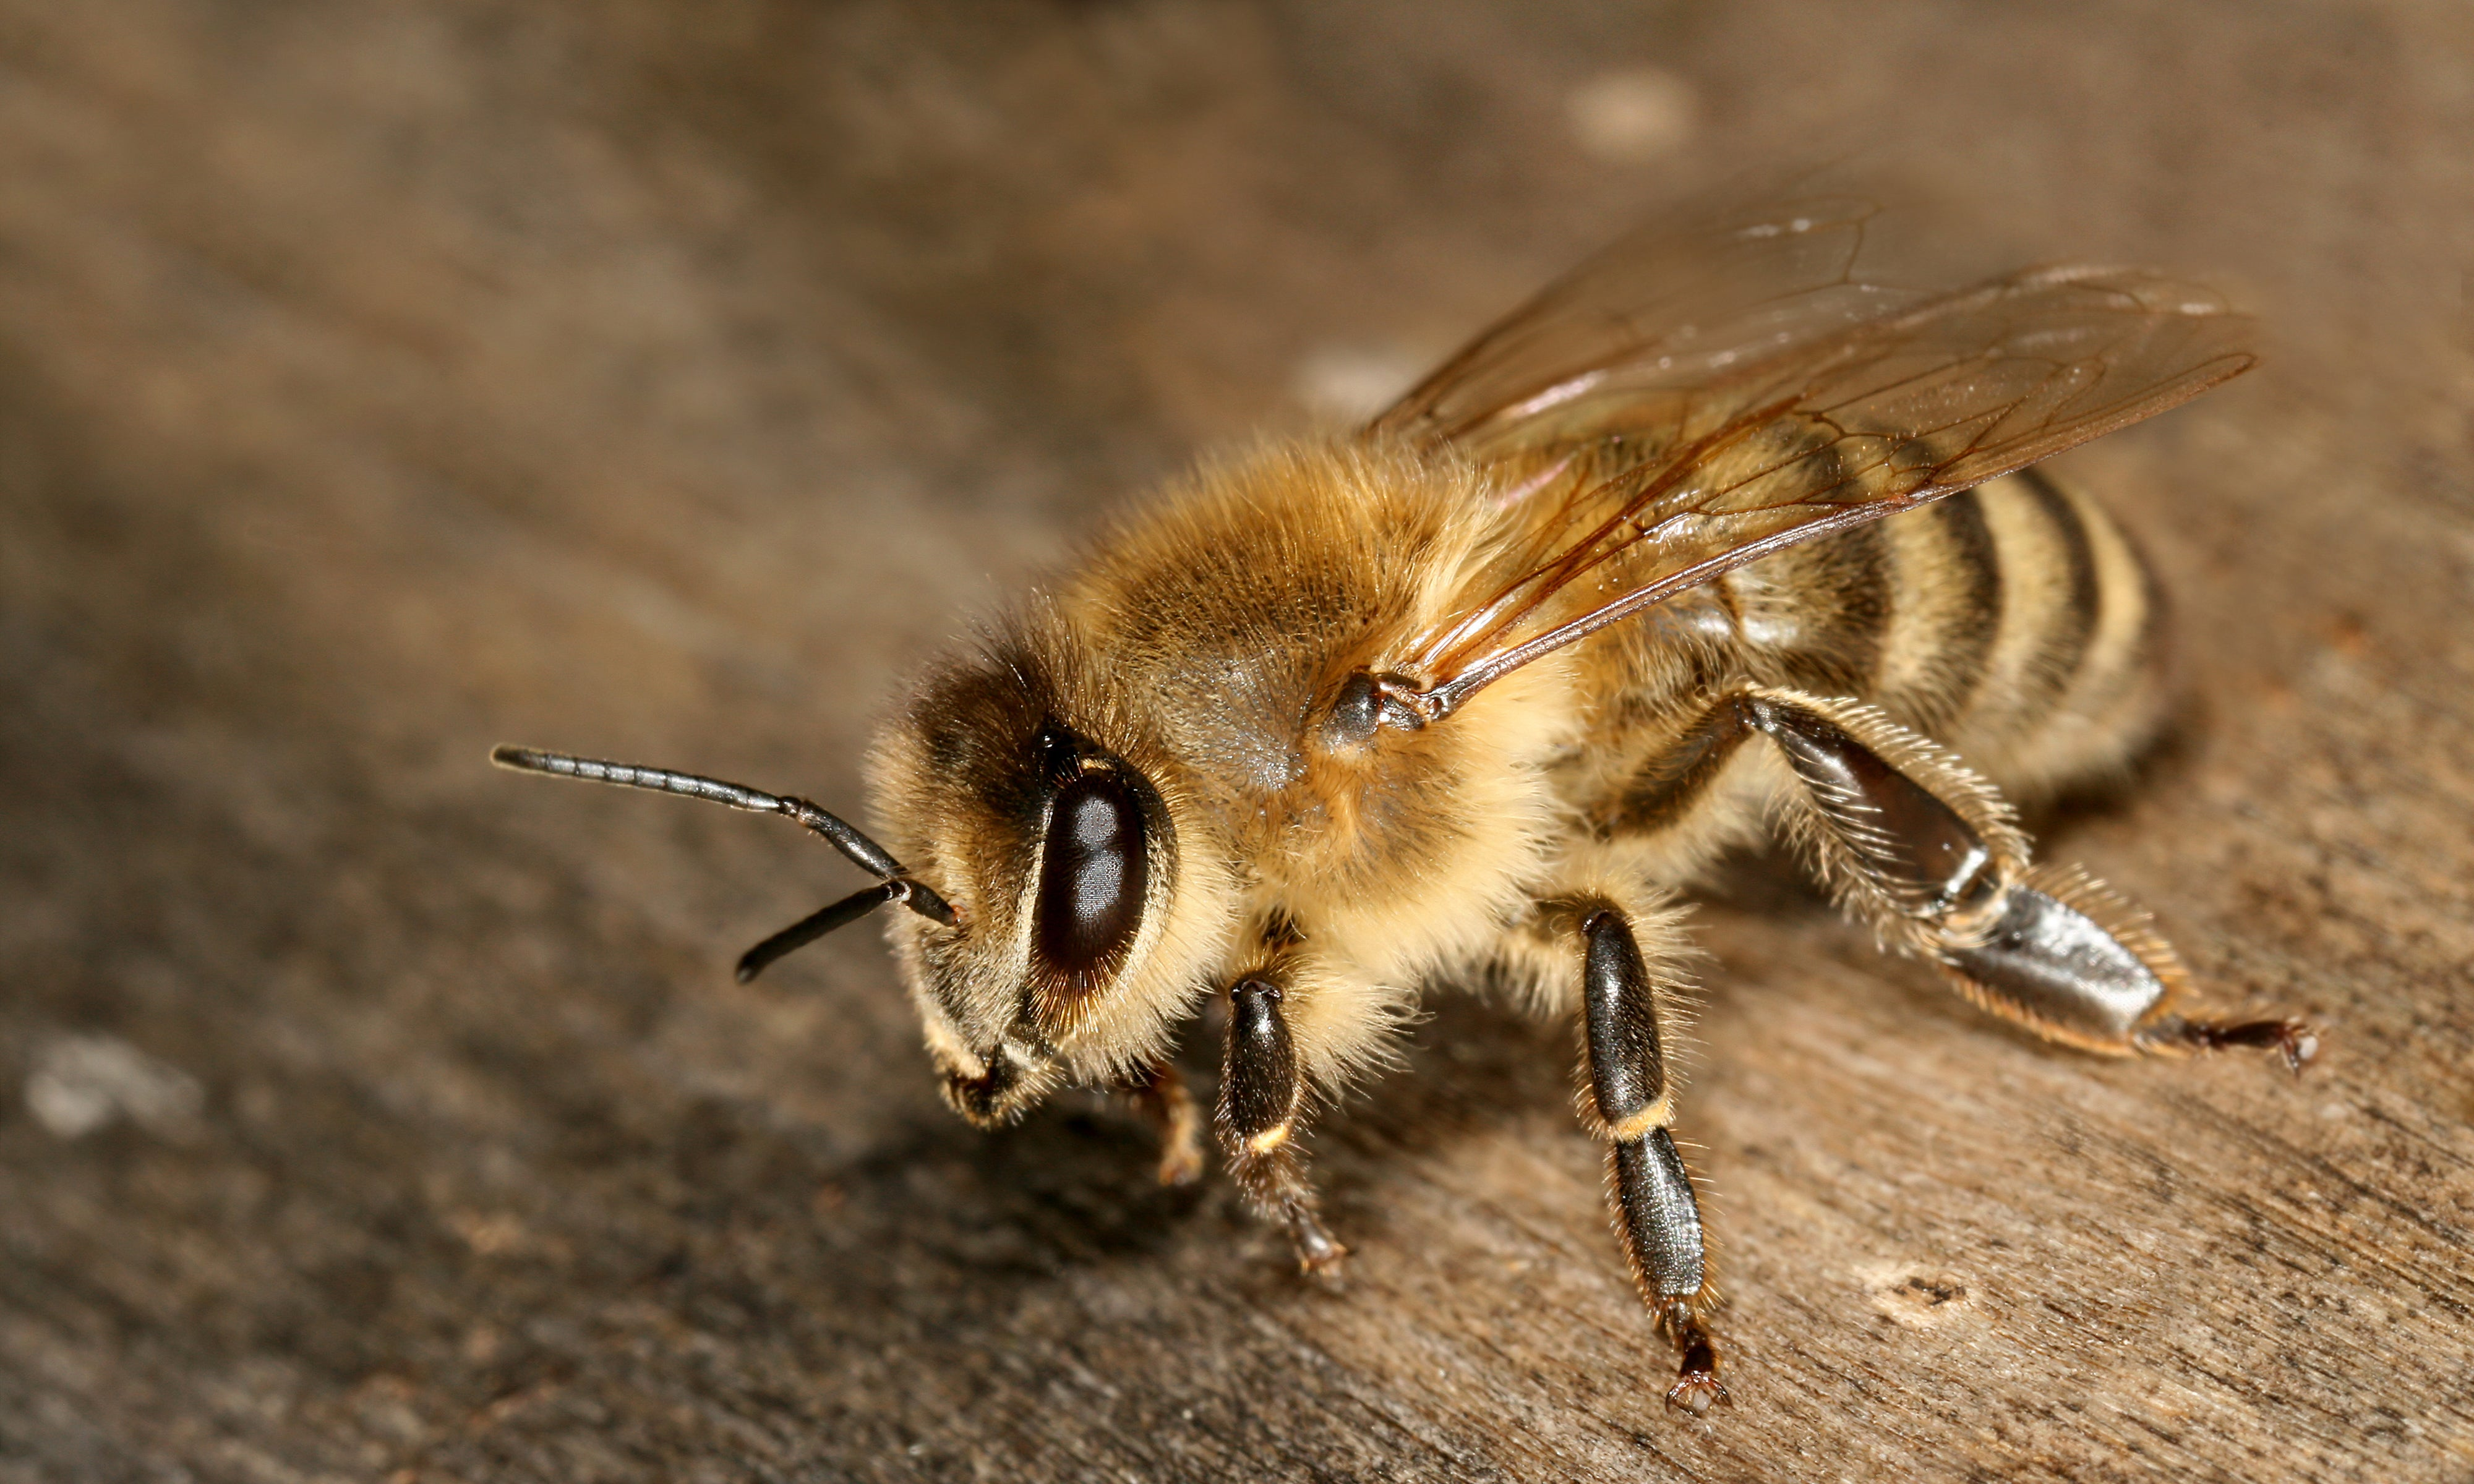 Fascinating Experiment By Australian Scientists Suggests Bees Understand The Concept Of Zero